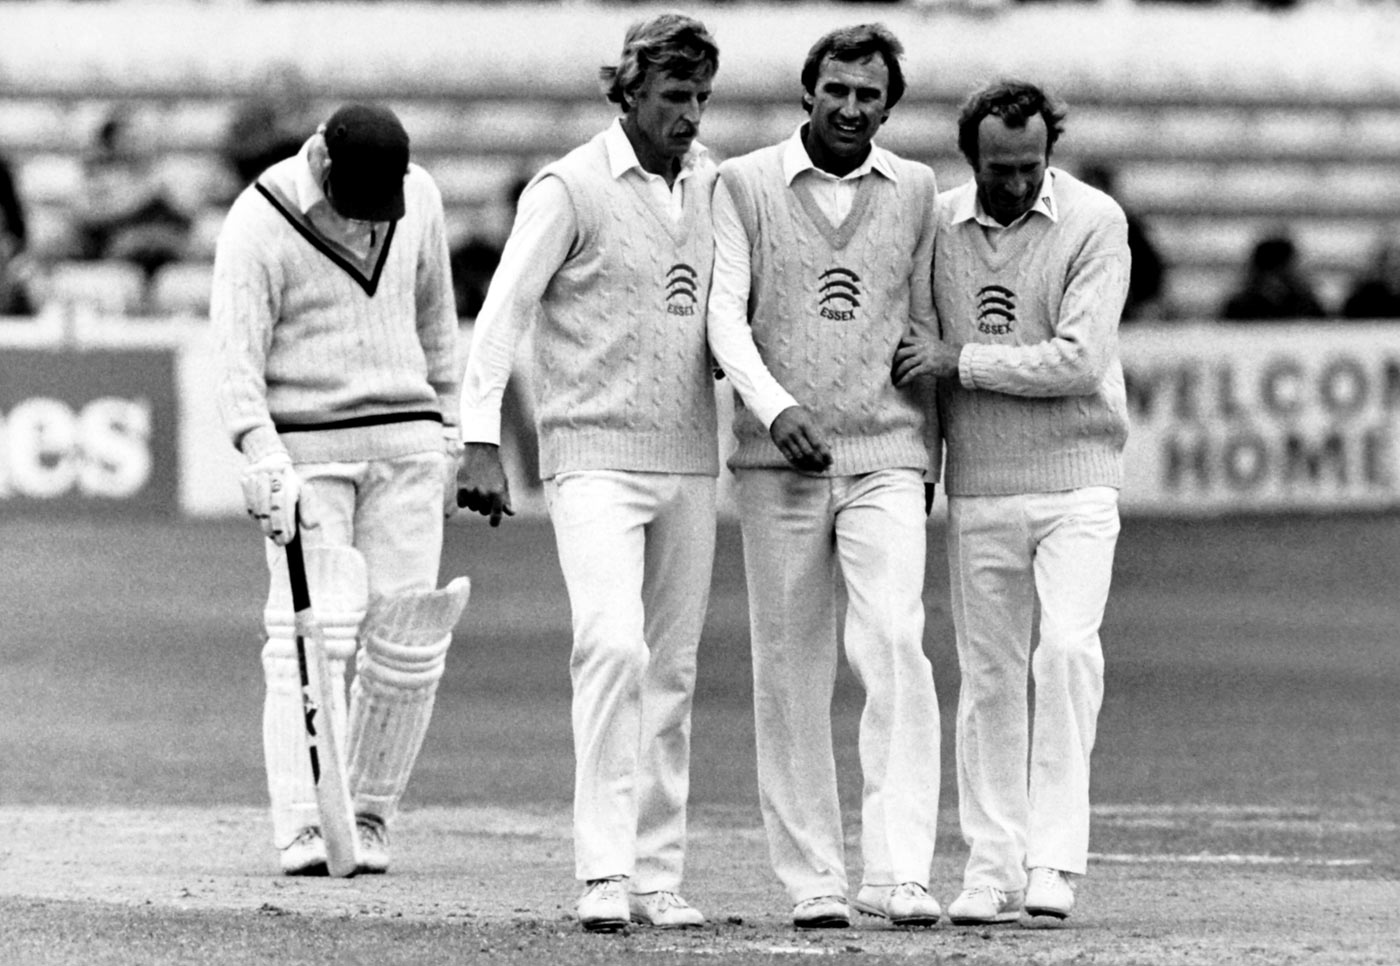 Stuart Turner, John Lever and Keith Fletcher walk back after a county match in Chelmsford, 1983